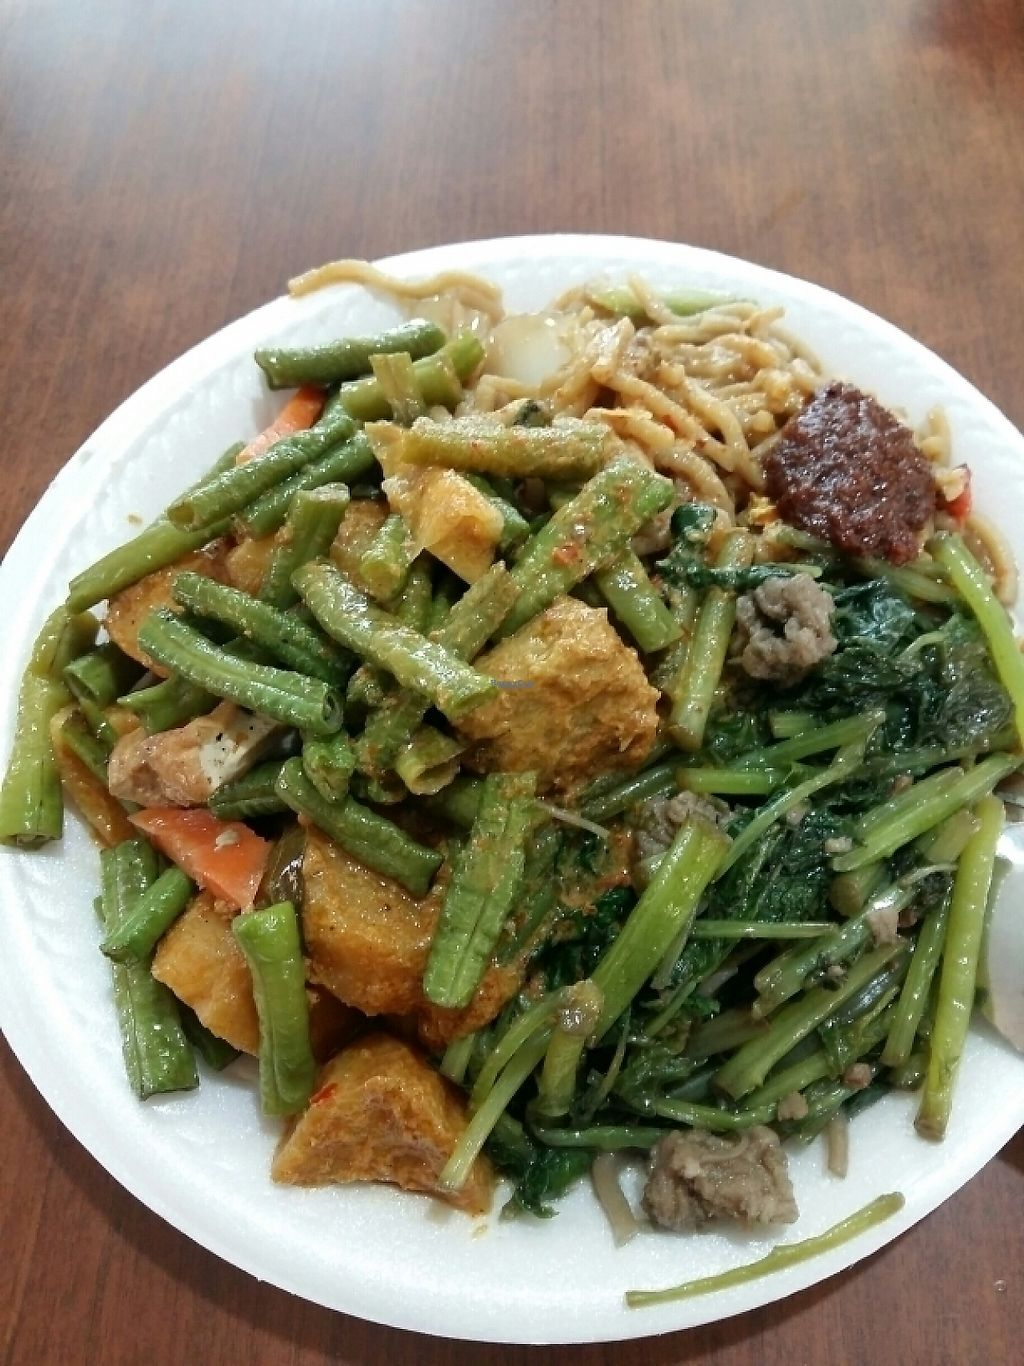 "Photo of Su Yuan Vegetarian Food  by <a href=""/members/profile/RichardLee"">RichardLee</a> <br/>Yellow noodle with rendang curry, fried long beans with tofu & spinach @$3 <br/> December 12, 2016  - <a href='/contact/abuse/image/83880/200131'>Report</a>"